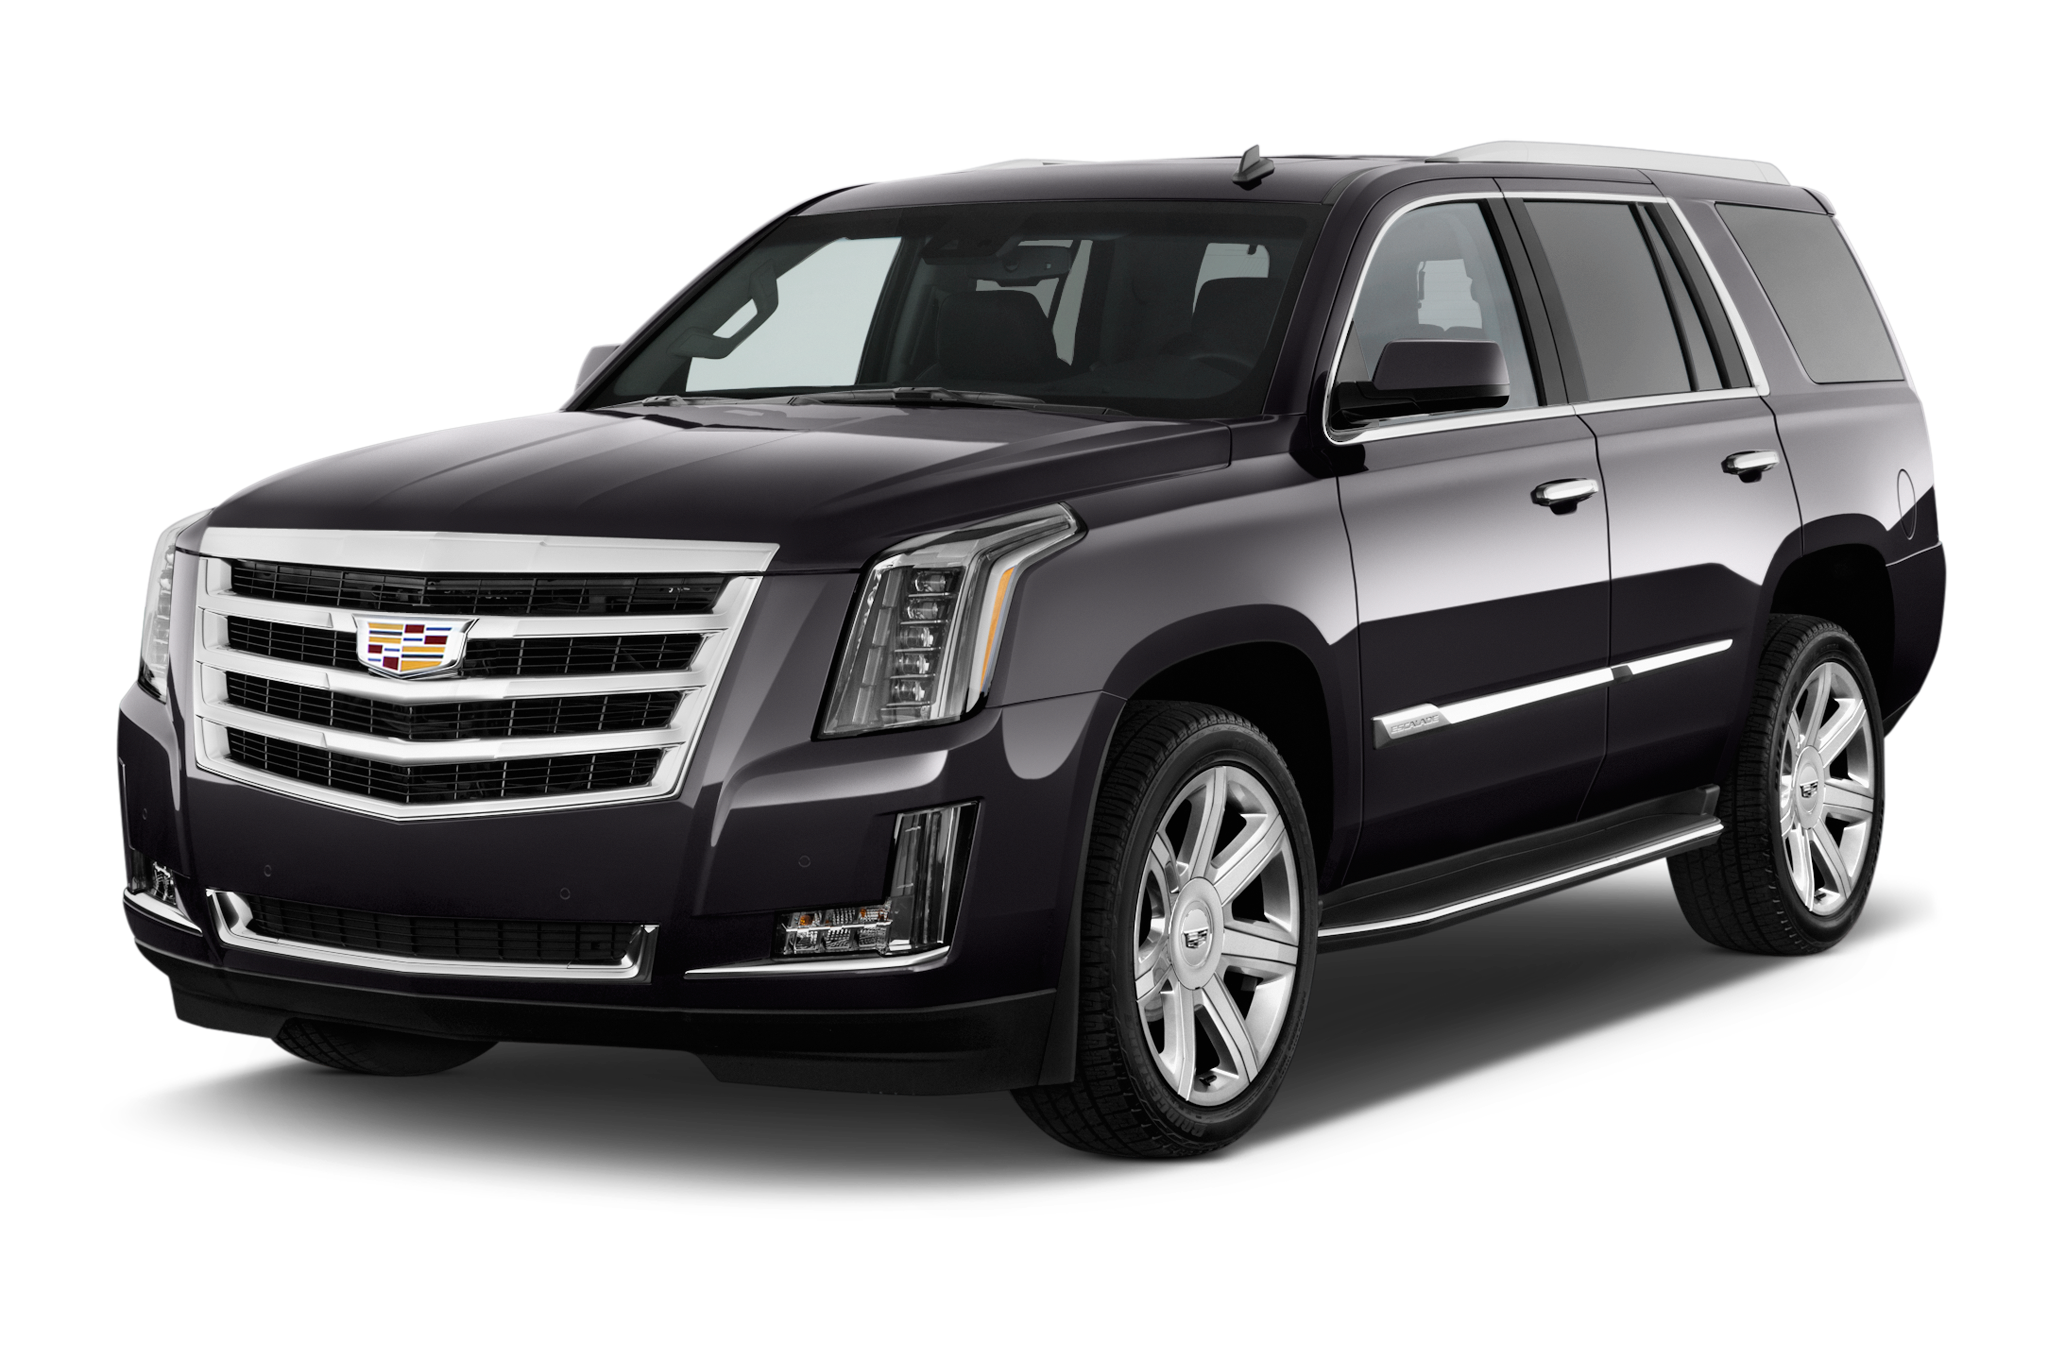 cadillac cb speed prefix gmt powered path for need wiki escalade fandom en latest